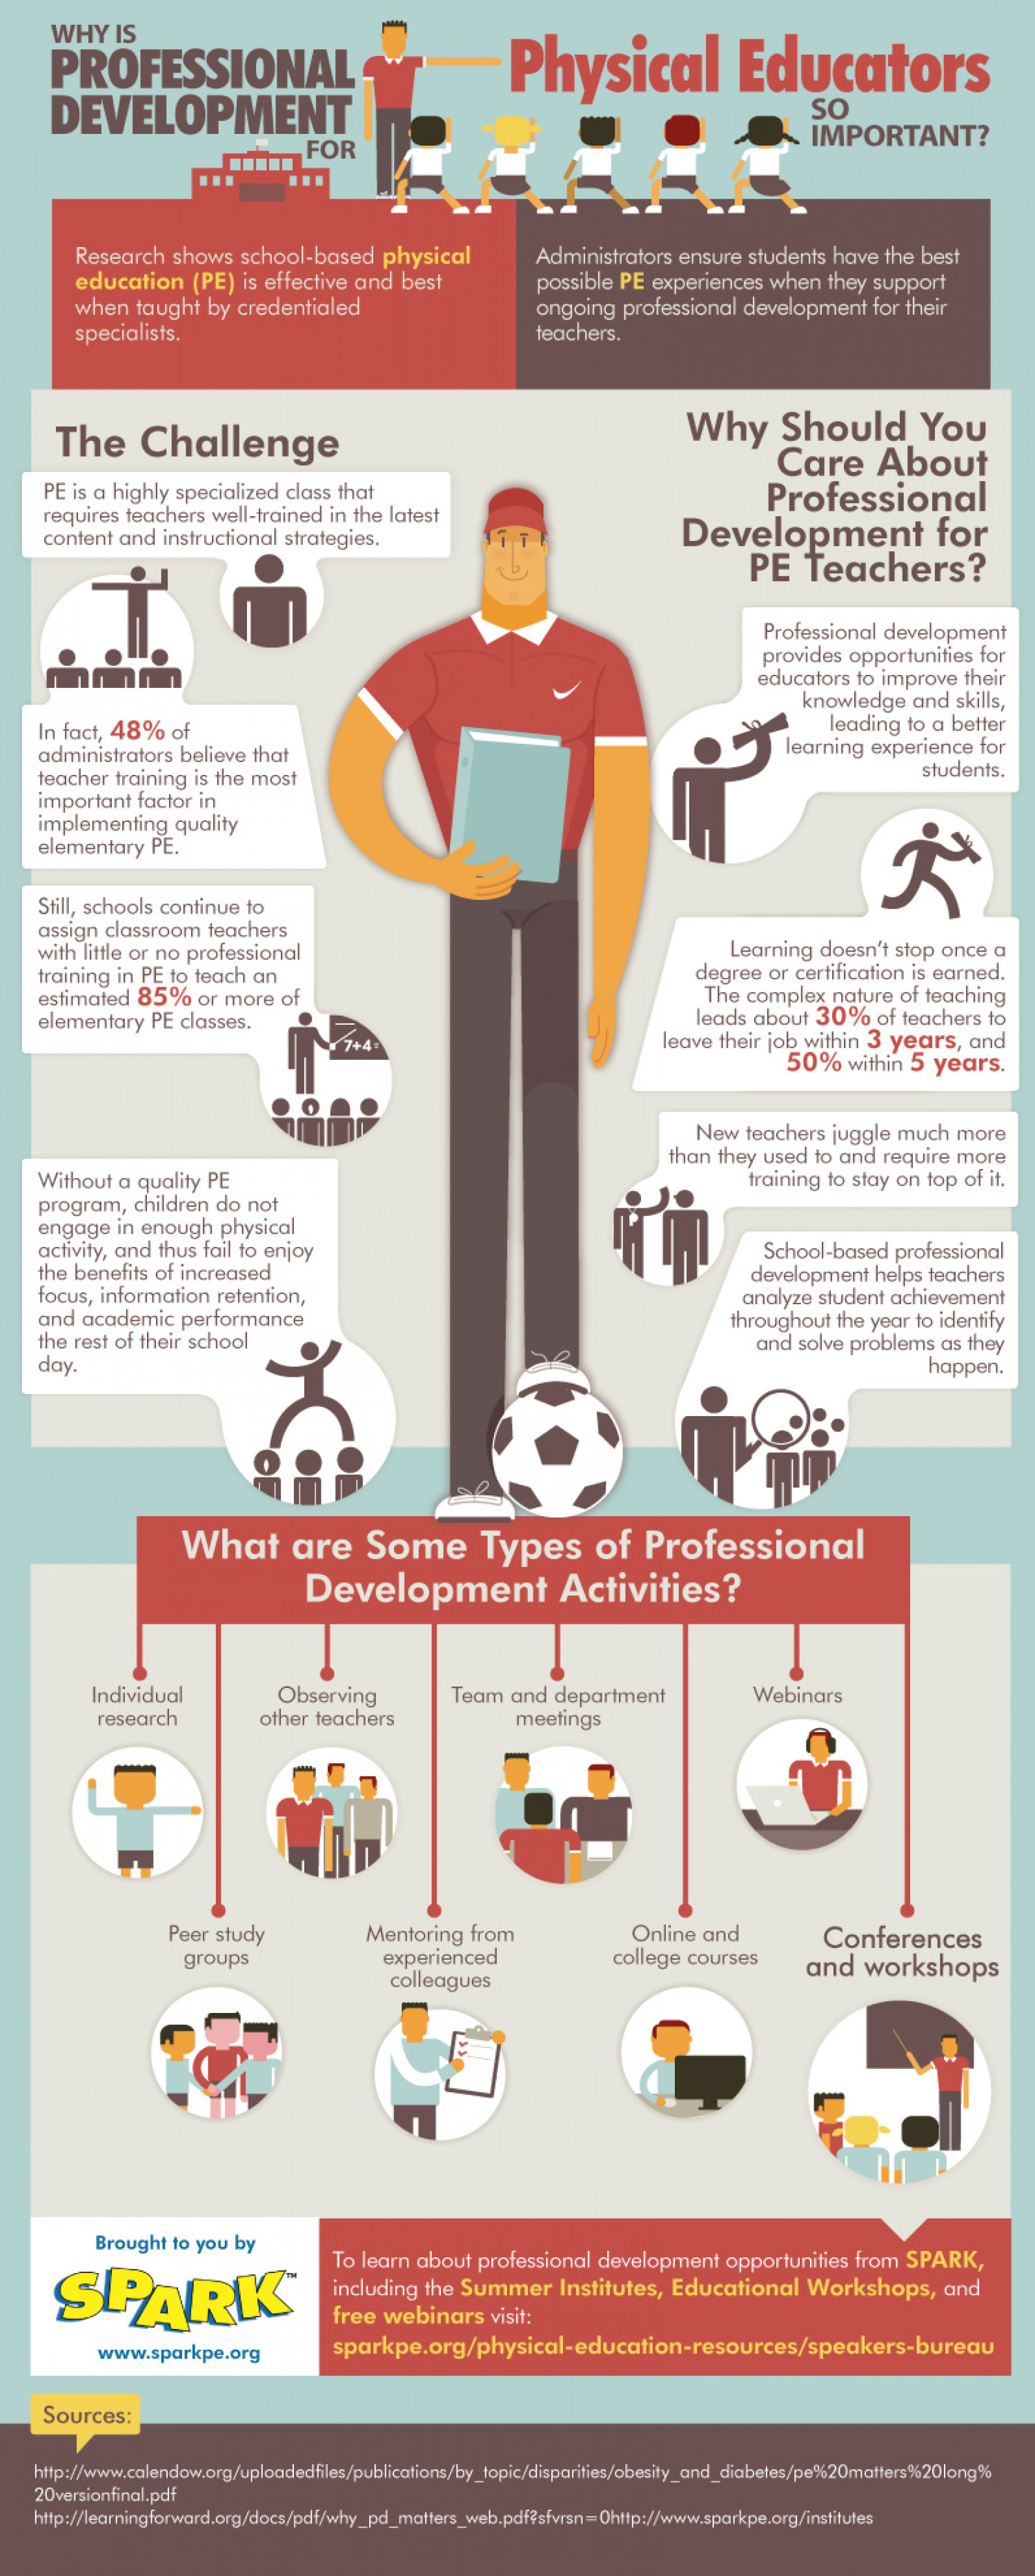 Why Is Professional Development For Physical Educators So Important